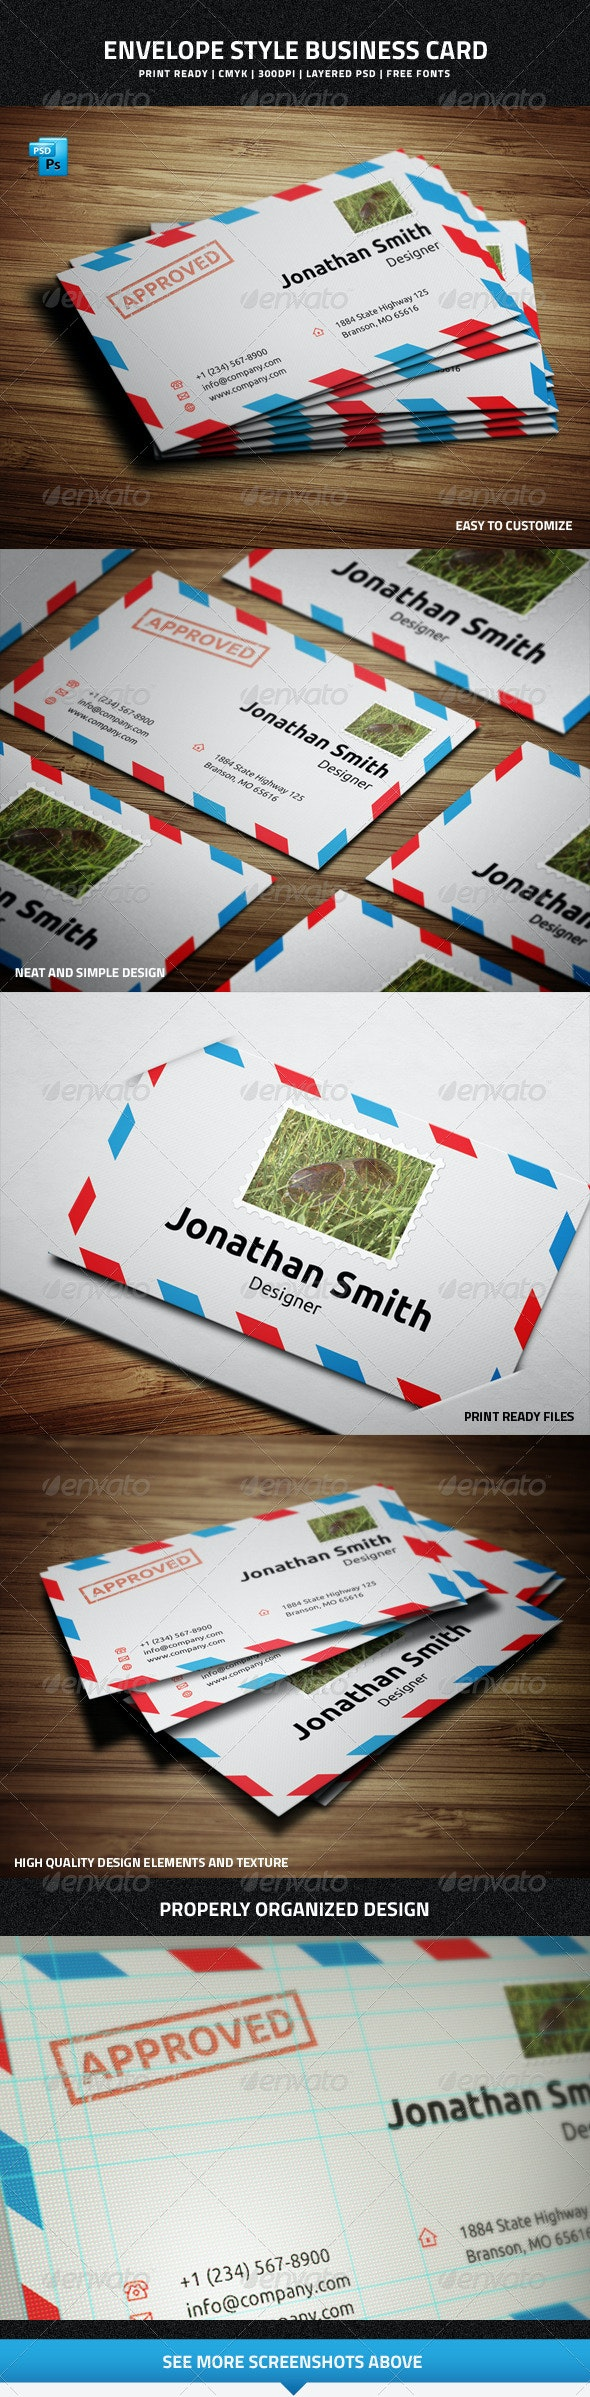 Envelope Style Business Card - 33 - Creative Business Cards